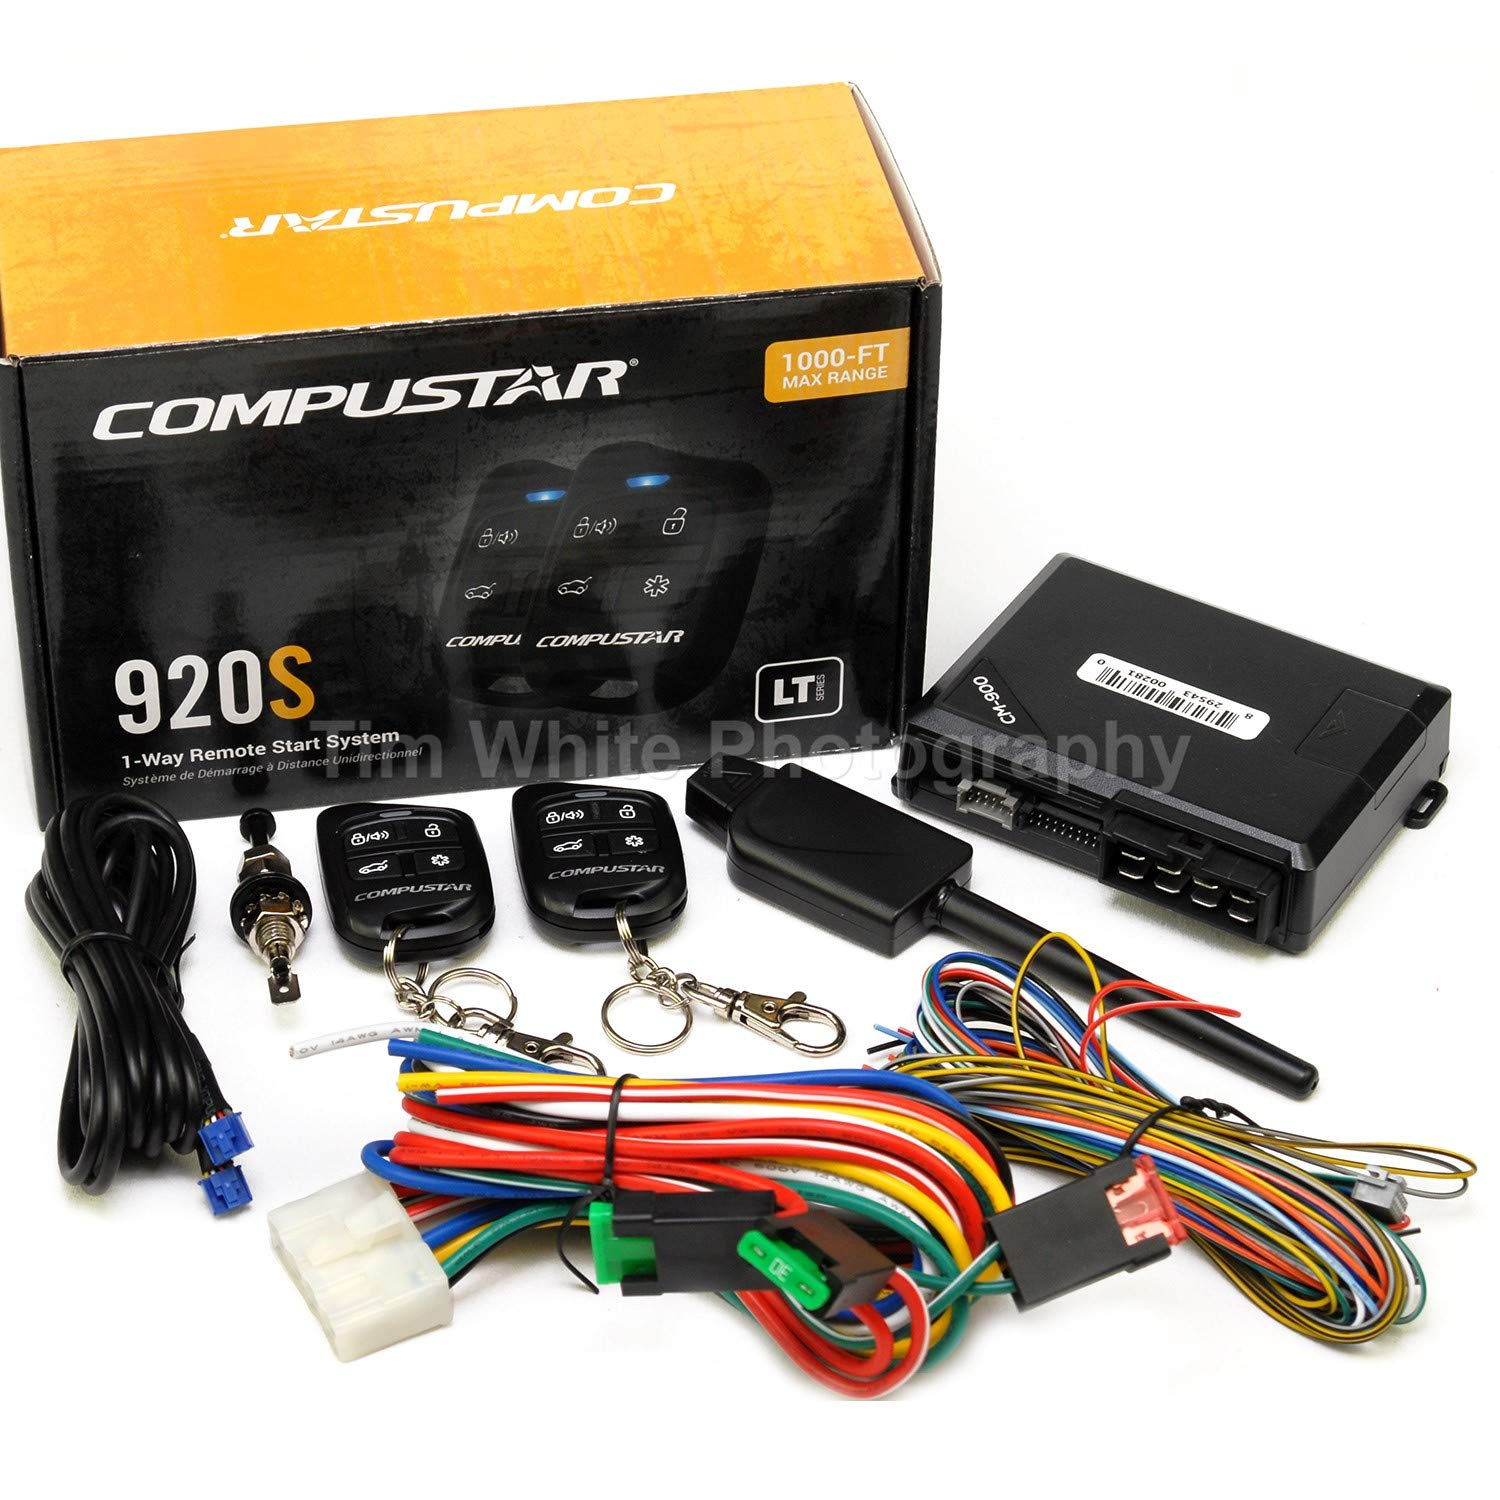 Amazon.com: Compustar CS920-S (920S) 1-way Remote Start and Keyless Entry  System with 1000-ft Range: Automotive